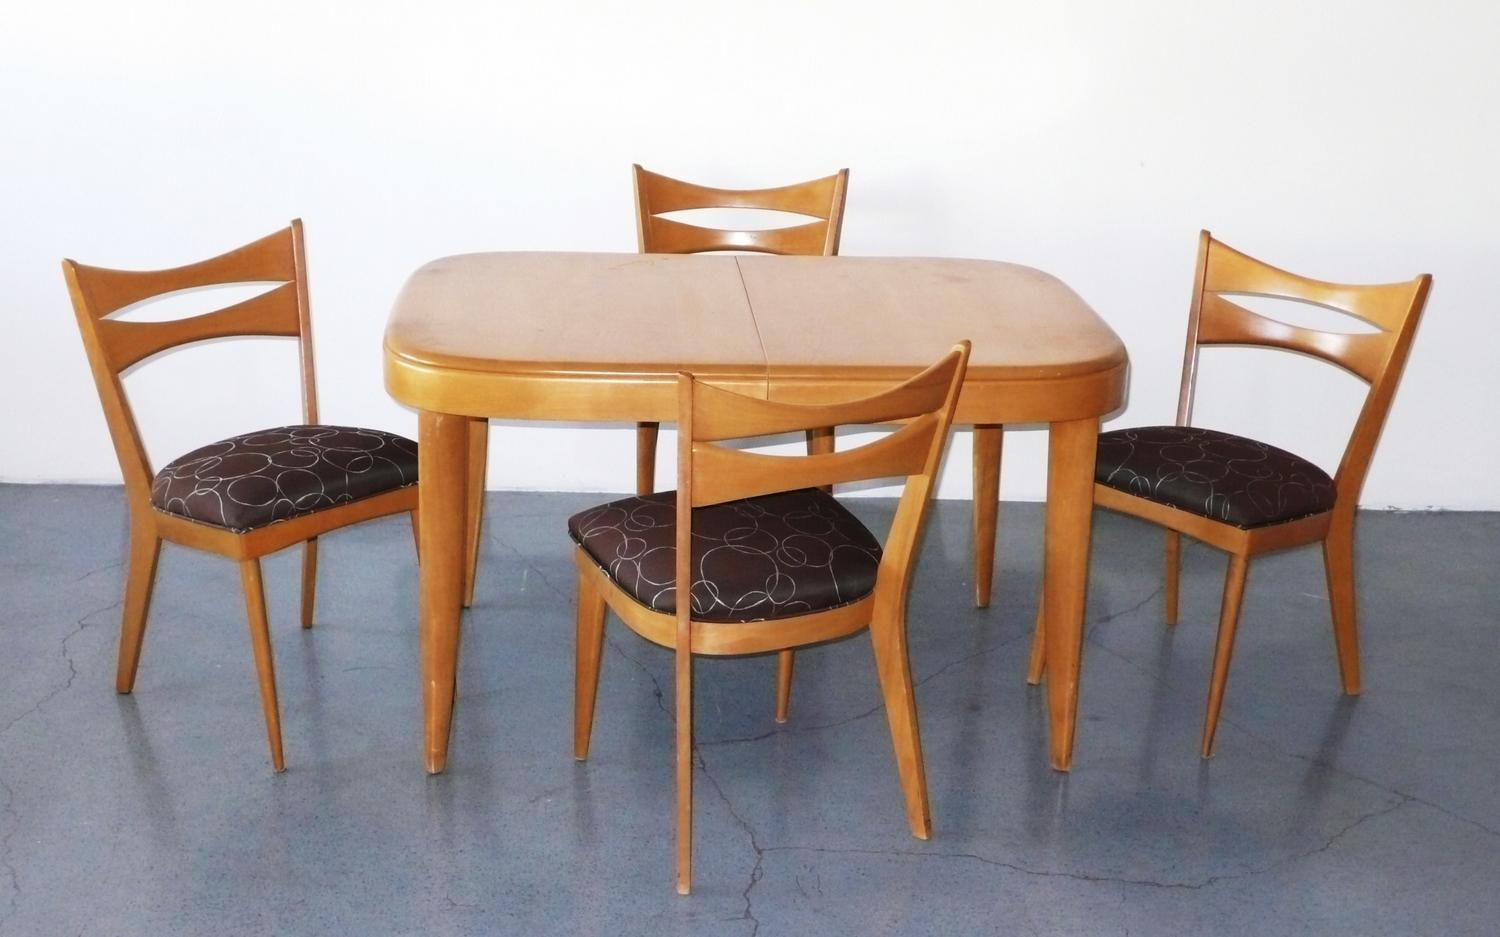 Merveilleux 1950 · Image 2 : Heywood Wakefield Dining Set With 4 Chairs C. 1950